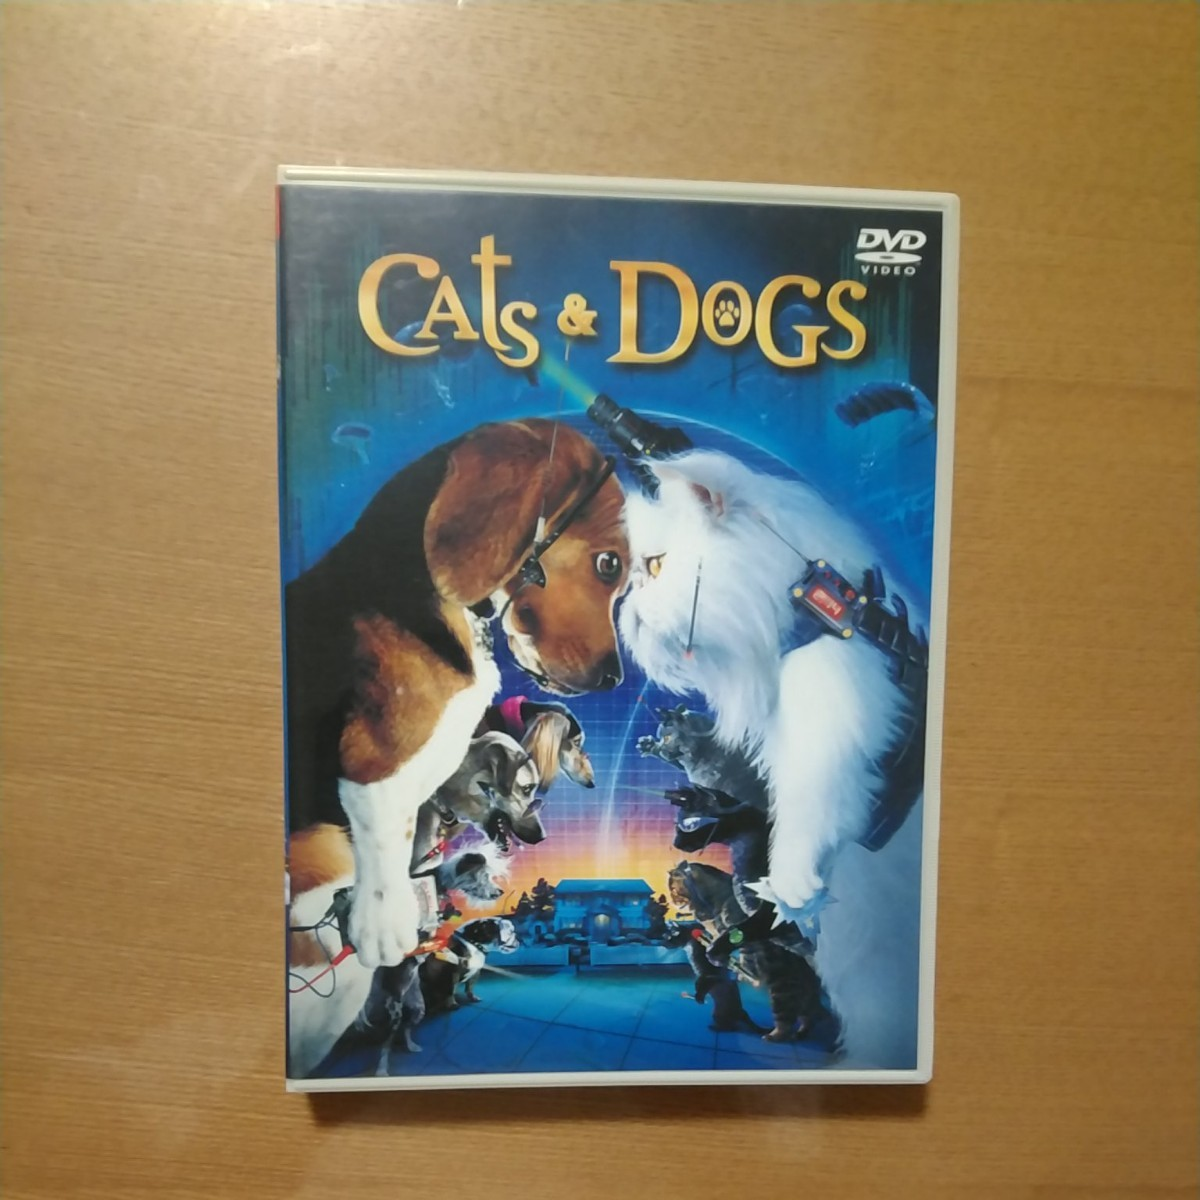 DVD CATS & DOGS